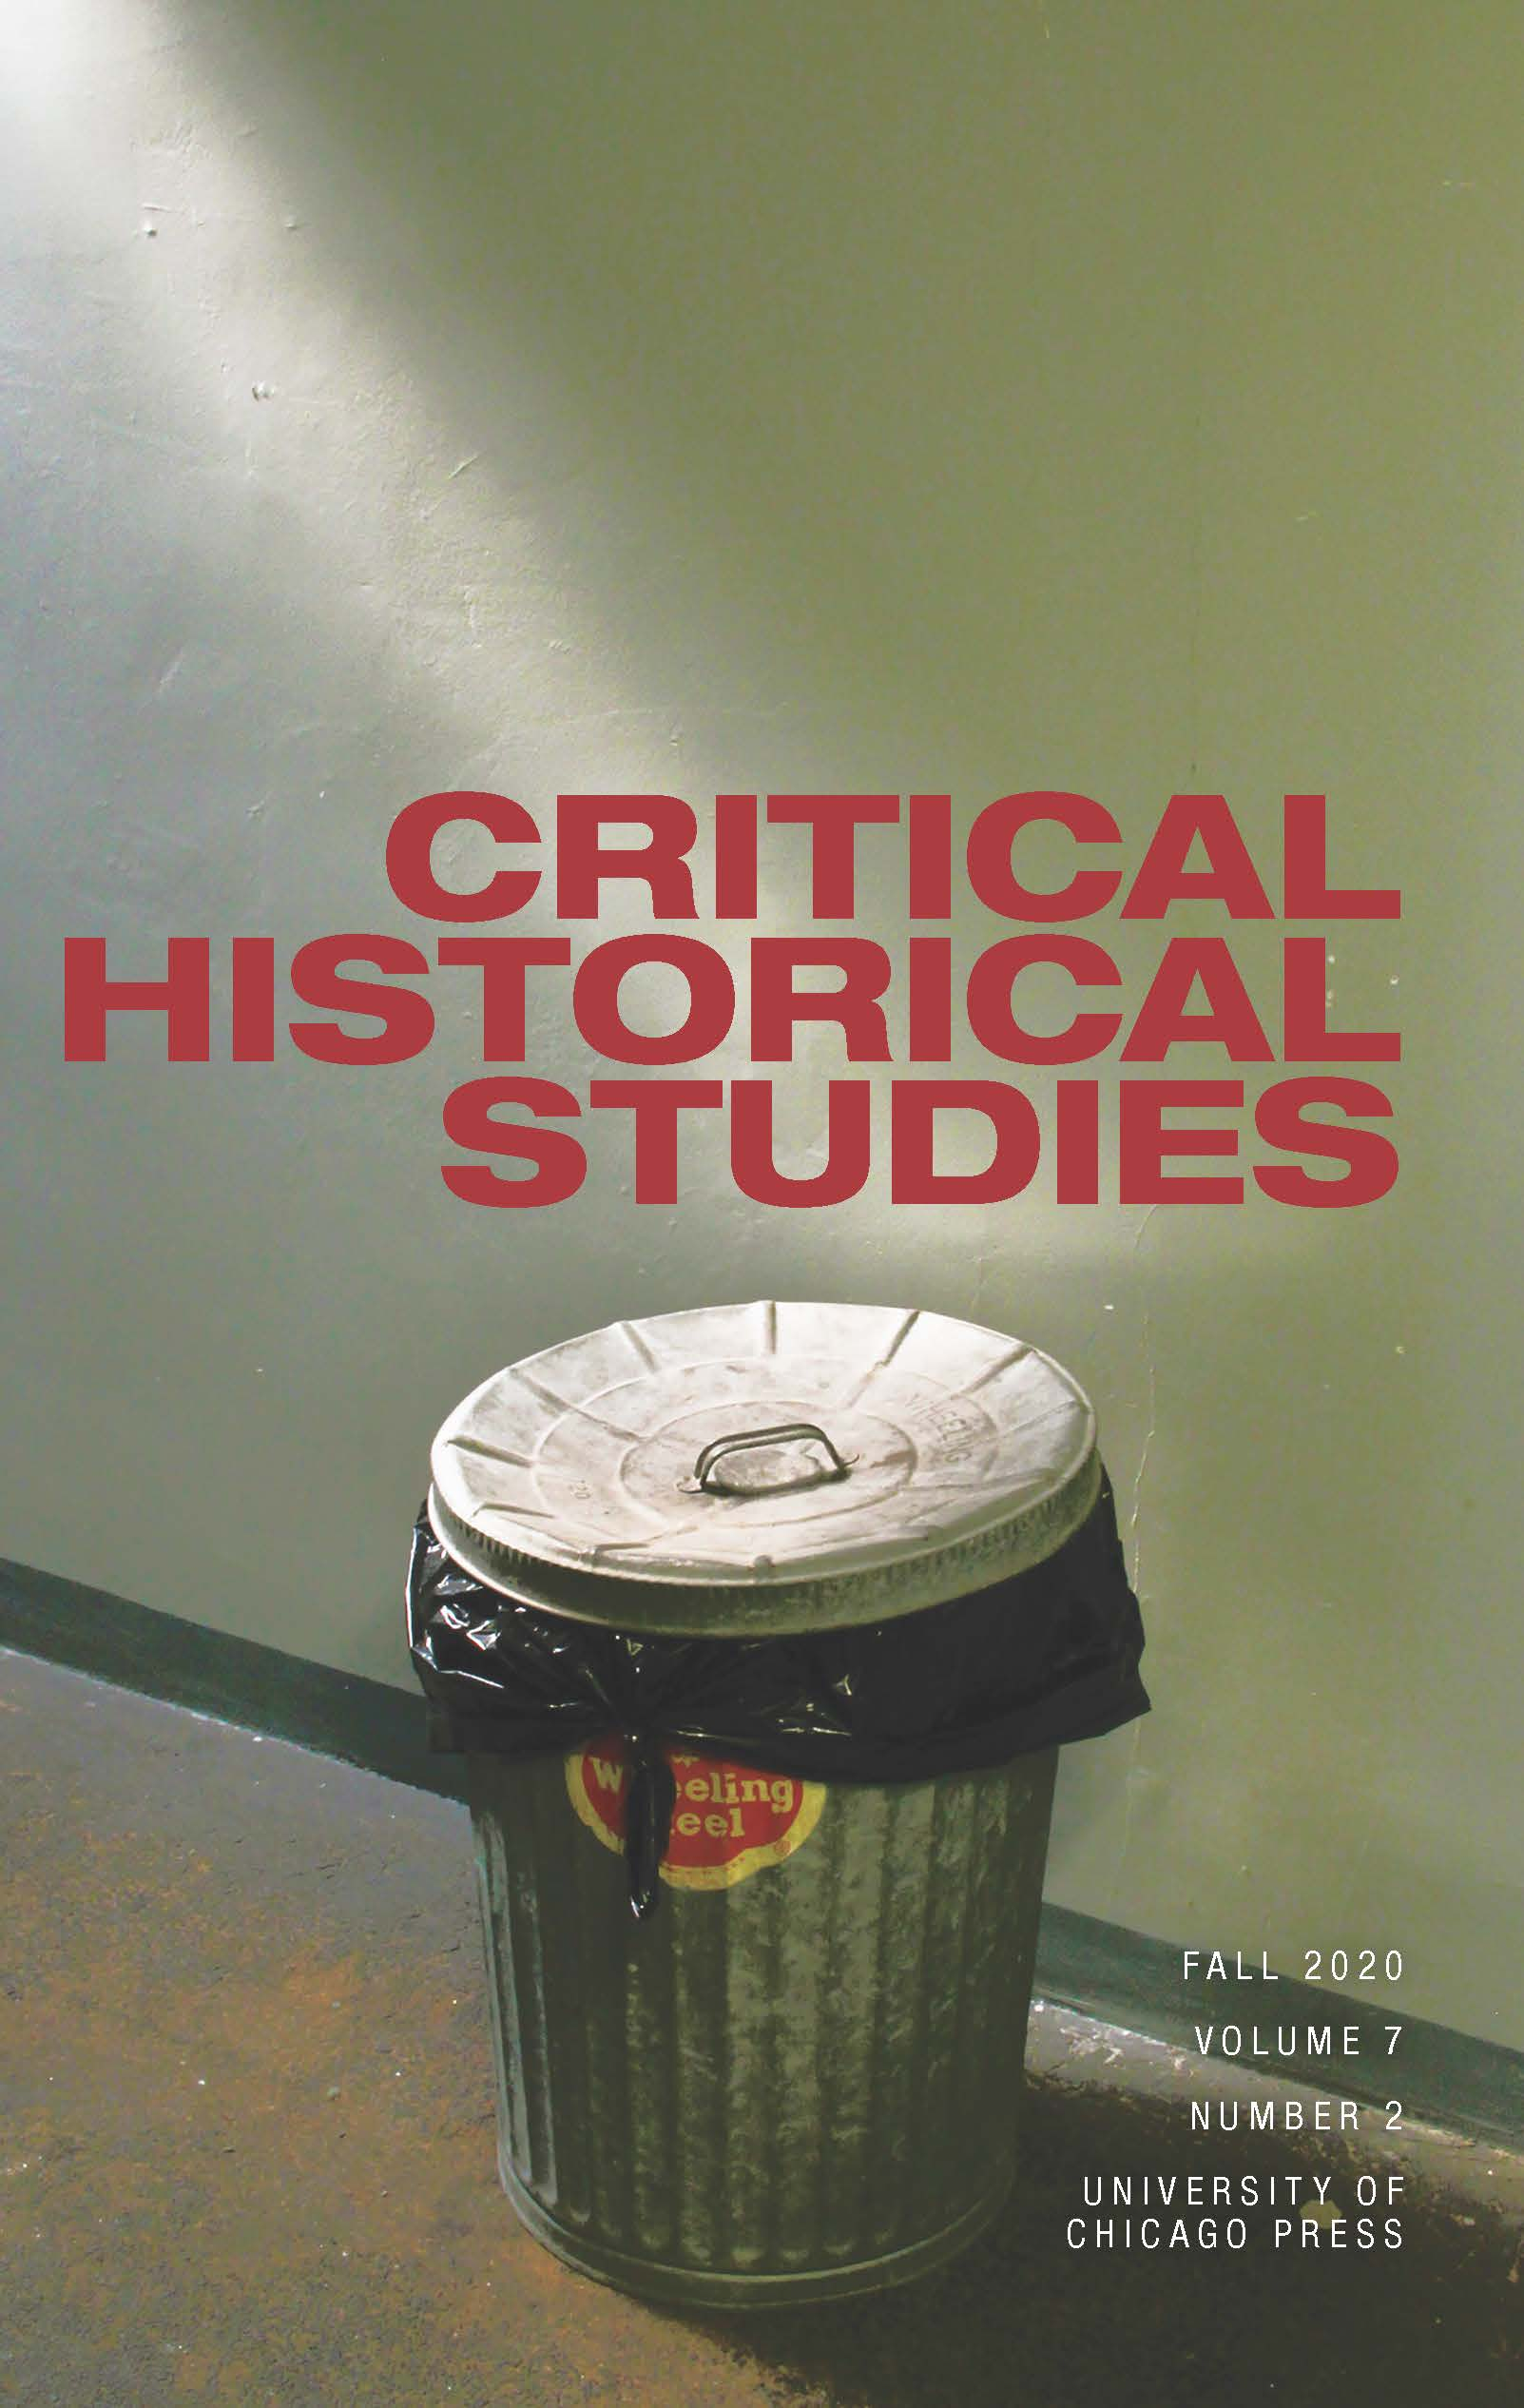 Cover of Fall 2020 issue of Critical Historical Studies journal showing an old metal garbage can from a high angle with dramatic light shining on it from above and to the left